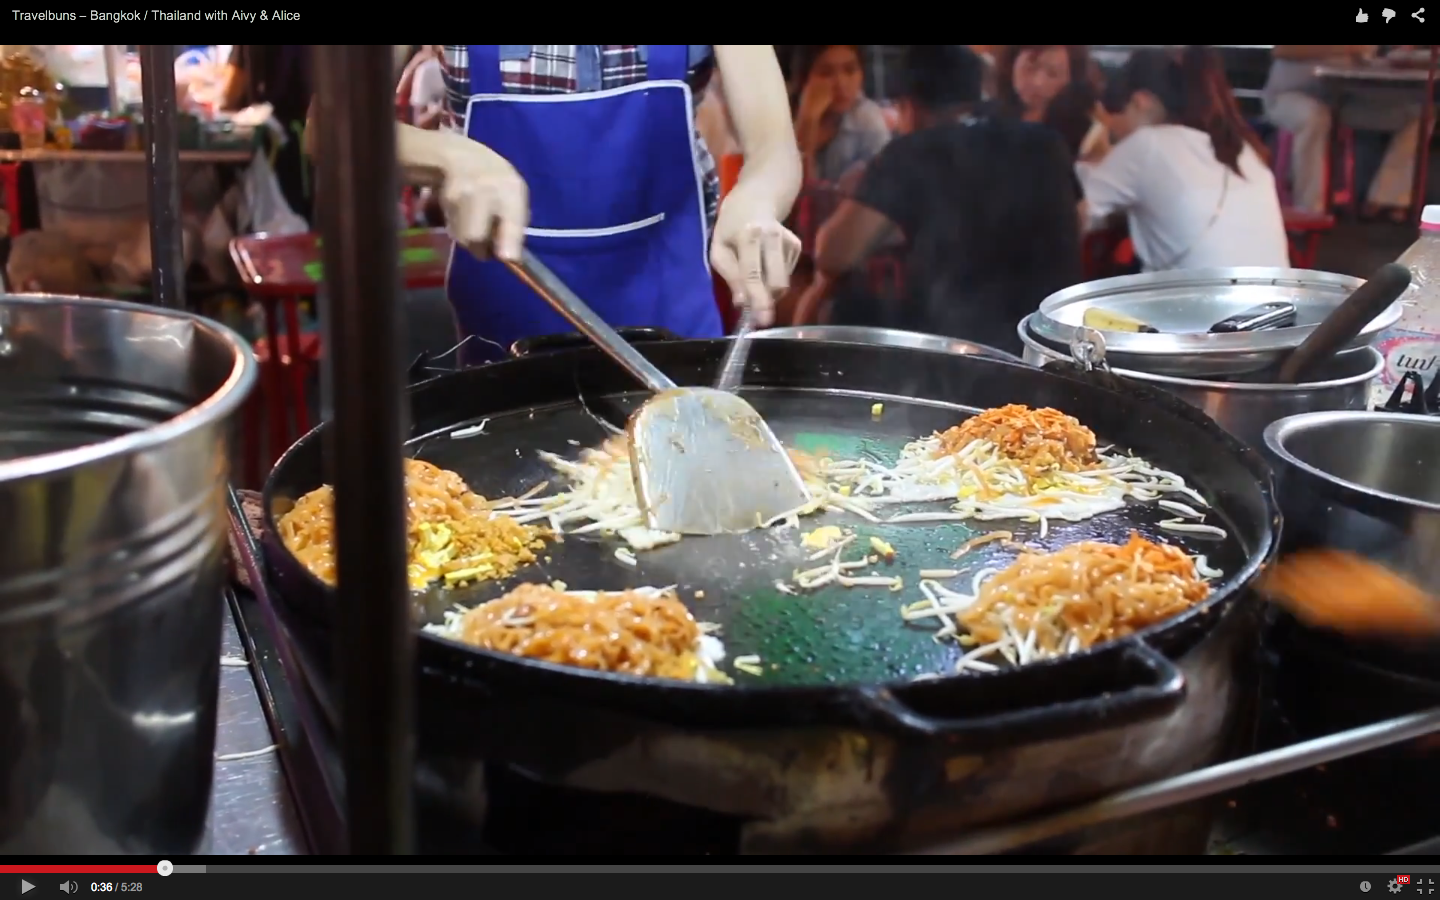 IHEARTALICE.DE – Fashion & Travel Blog: Bangkok, Thailand Travel & Food Diary – BUN BAO Channel Video / Food Guide